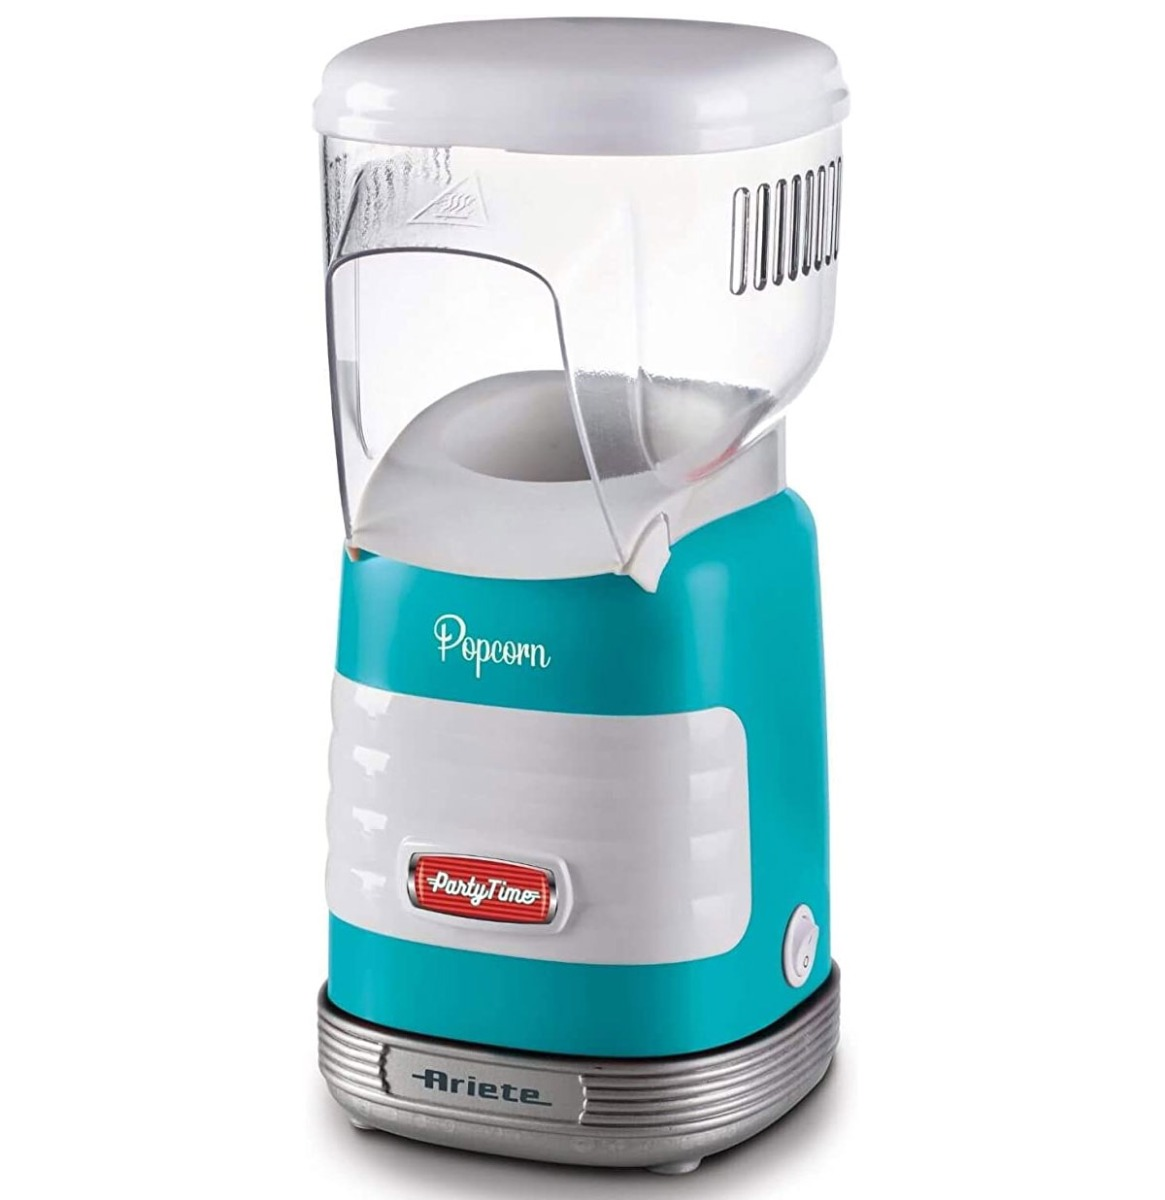 Ariete Popcorn Machine Party Time - Turquoise